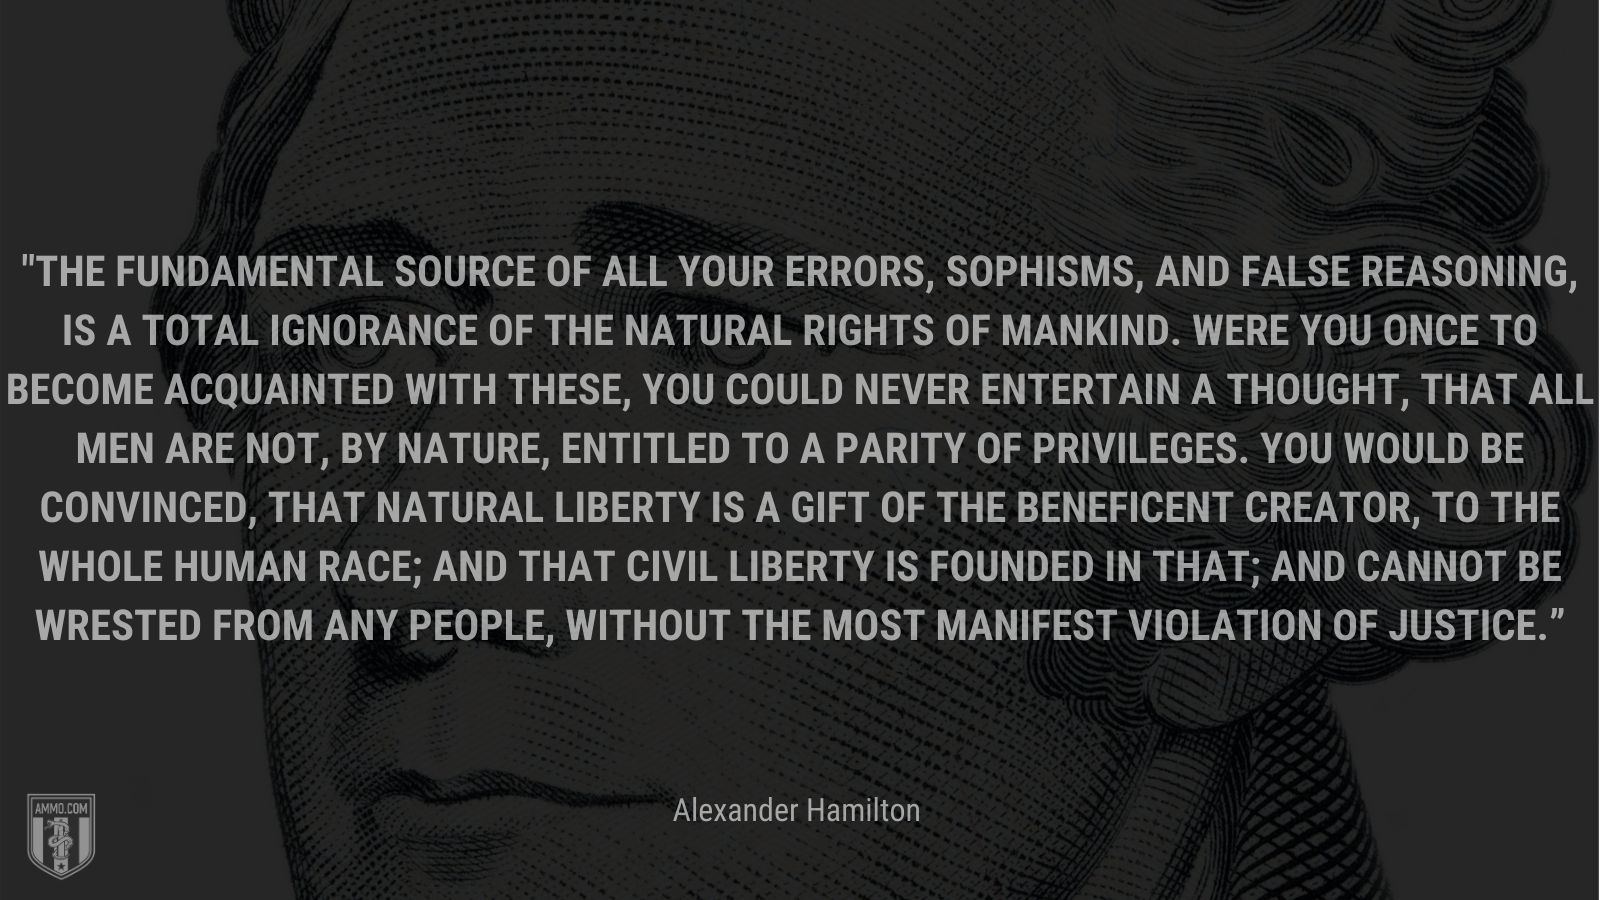 """""""The fundamental source of all your errors, sophisms, and false reasoning, is a total ignorance of the natural rights of mankind. Were you once to become acquainted with these, you could never entertain a thought, that all men are not, by nature, entitled to a parity of privileges. You would be convinced, that natural liberty is a gift of the beneficent Creator, to the whole human race; and that civil liberty is founded in that; and cannot be wrested from any people, without the most manifest violation of justice."""" - Alexander Hamilton"""